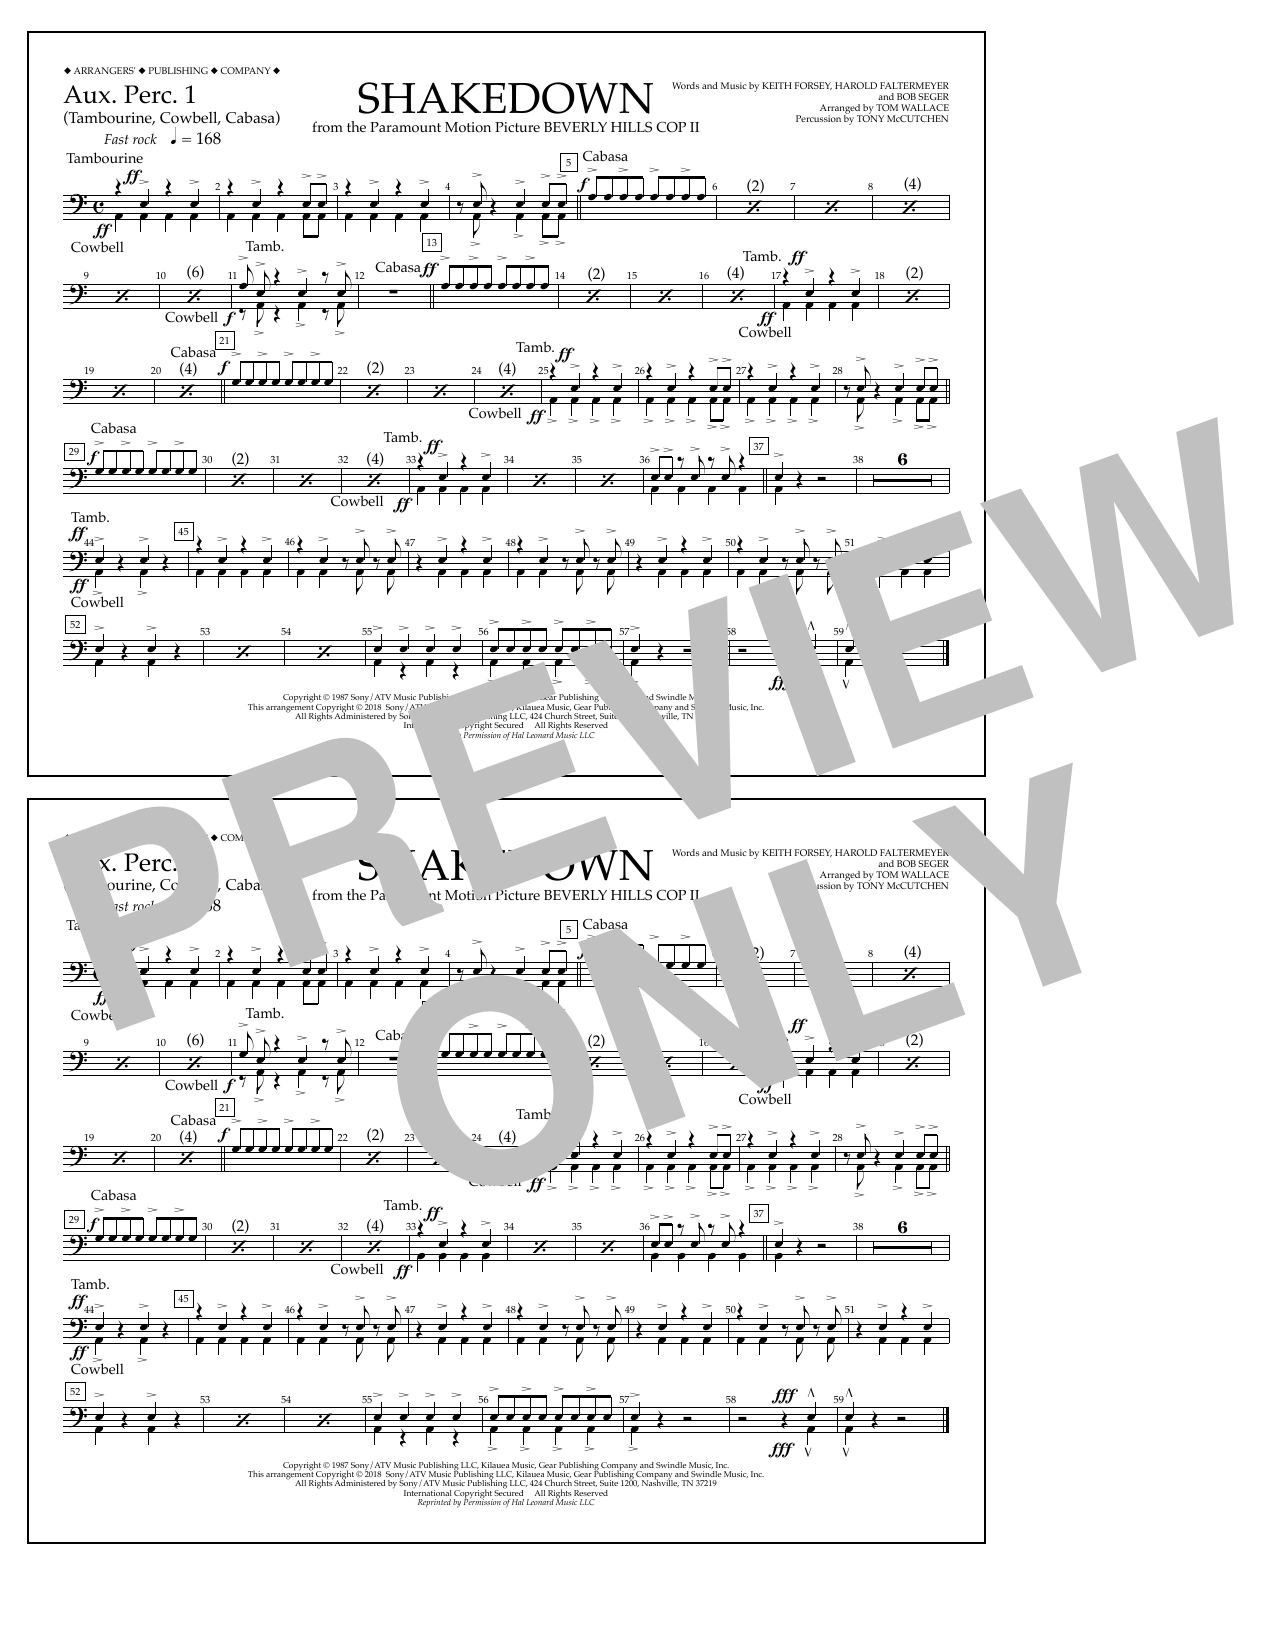 Tom Wallace Shakedown - Aux. Perc. 1 sheet music notes and chords. Download Printable PDF.